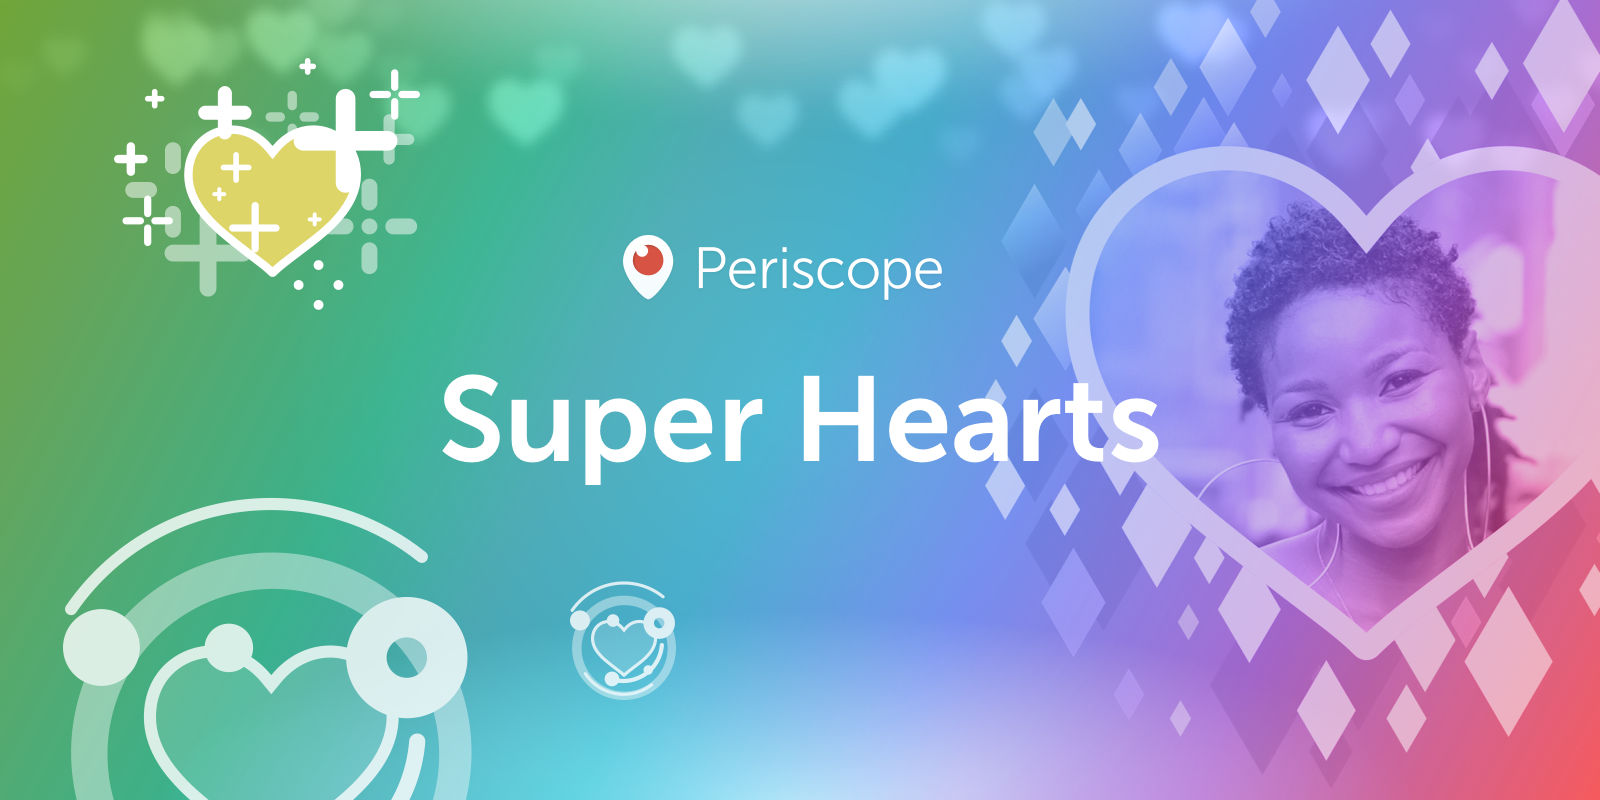 Super Hearts A New Way To Show The Love Periscope Medium